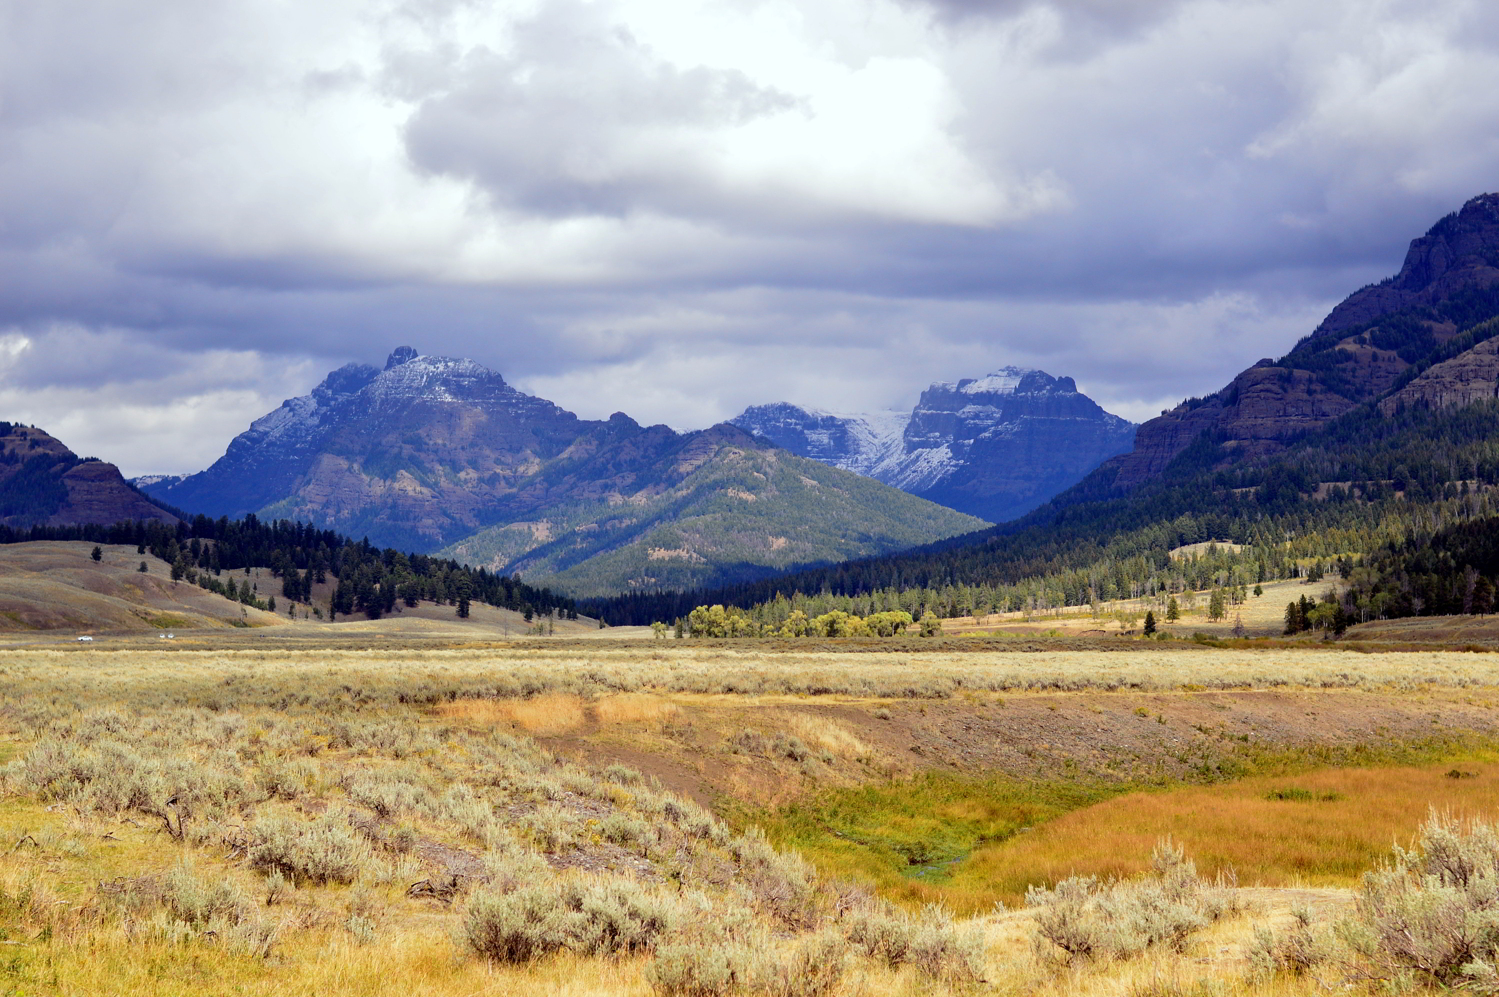 yellowstone-national-park-lamar-valley-travel-guide-blogger